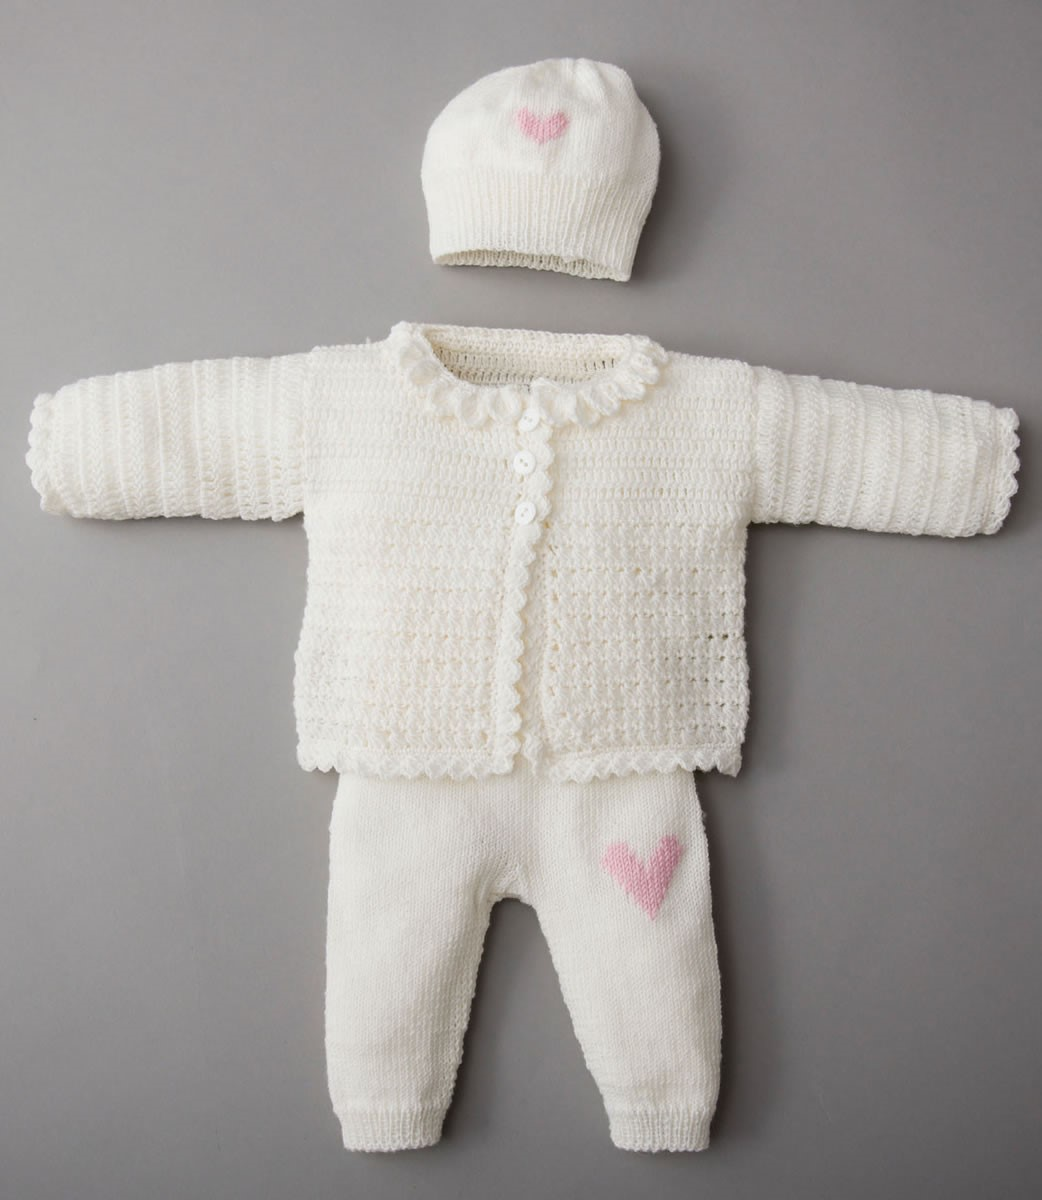 Lana Grossa CARDIGAN, PANTALON, BONNET ET CHAUSSONS Cool Wool Baby